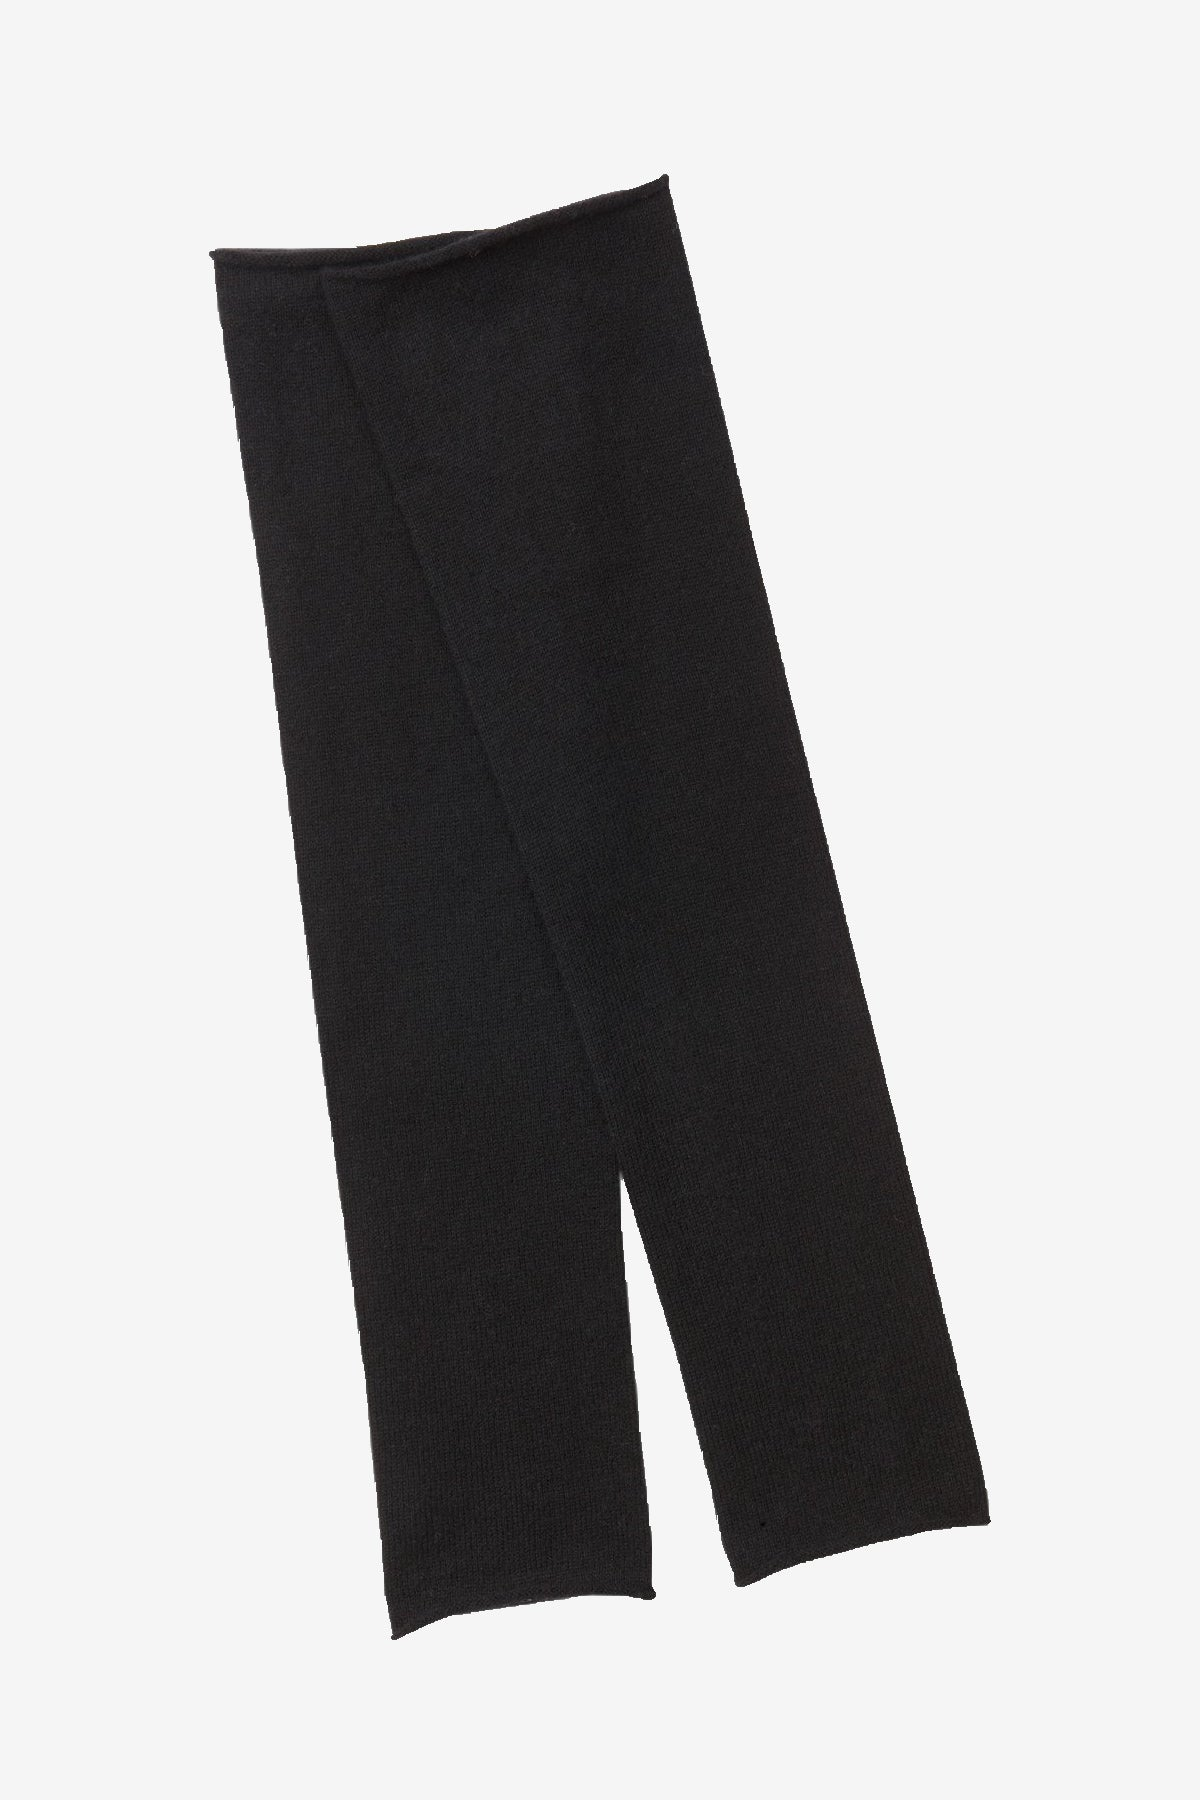 Sara cashmere arm warmers in black